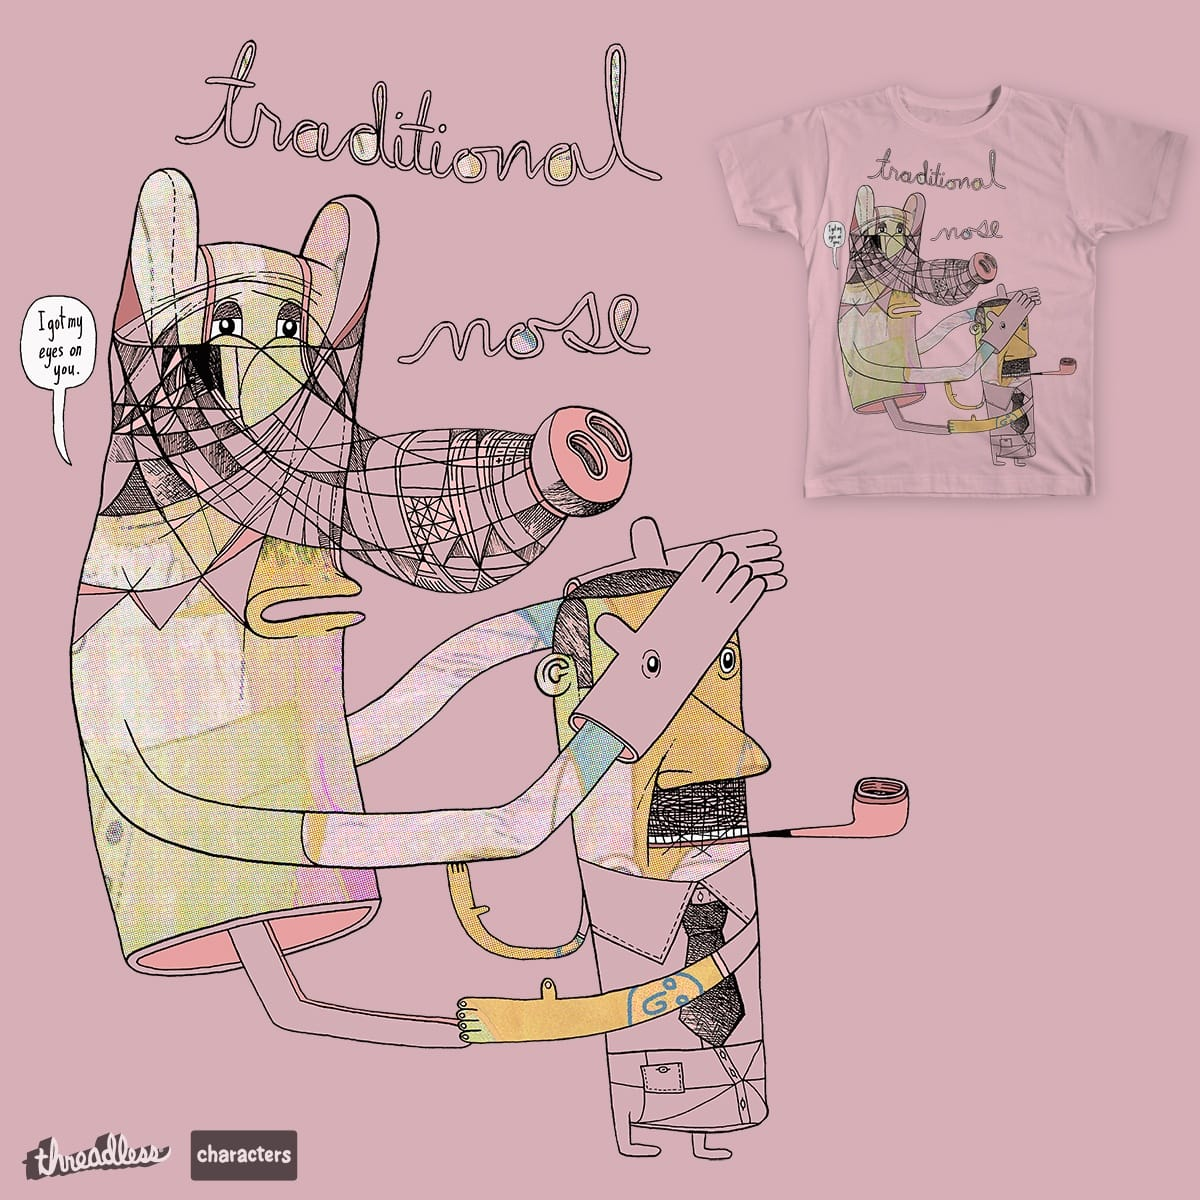 traditional nose by Peter Thompson on Threadless